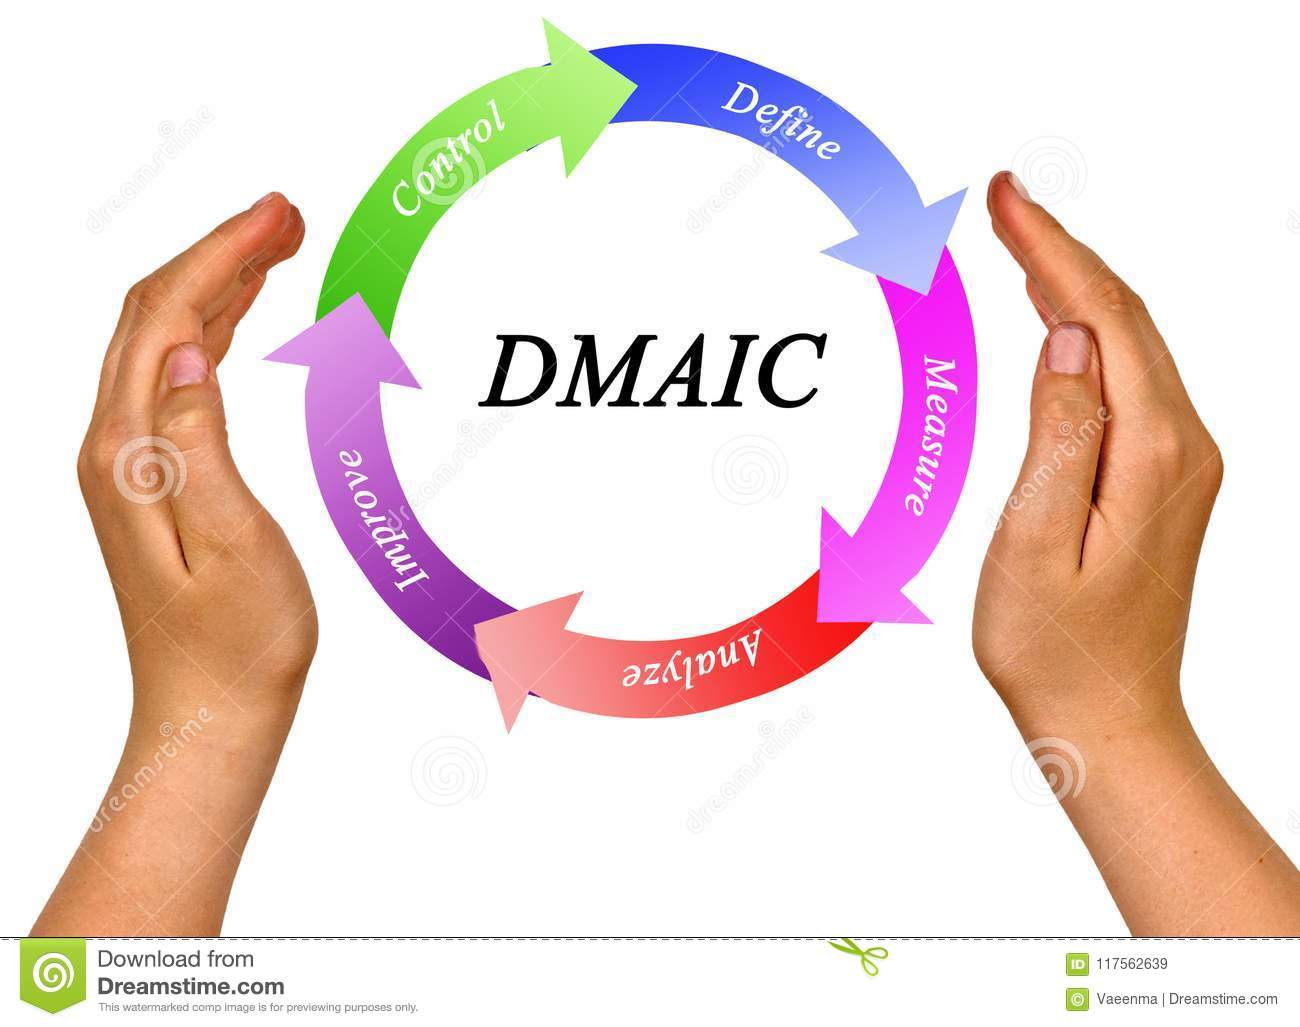 Process accordingly to DMAIC